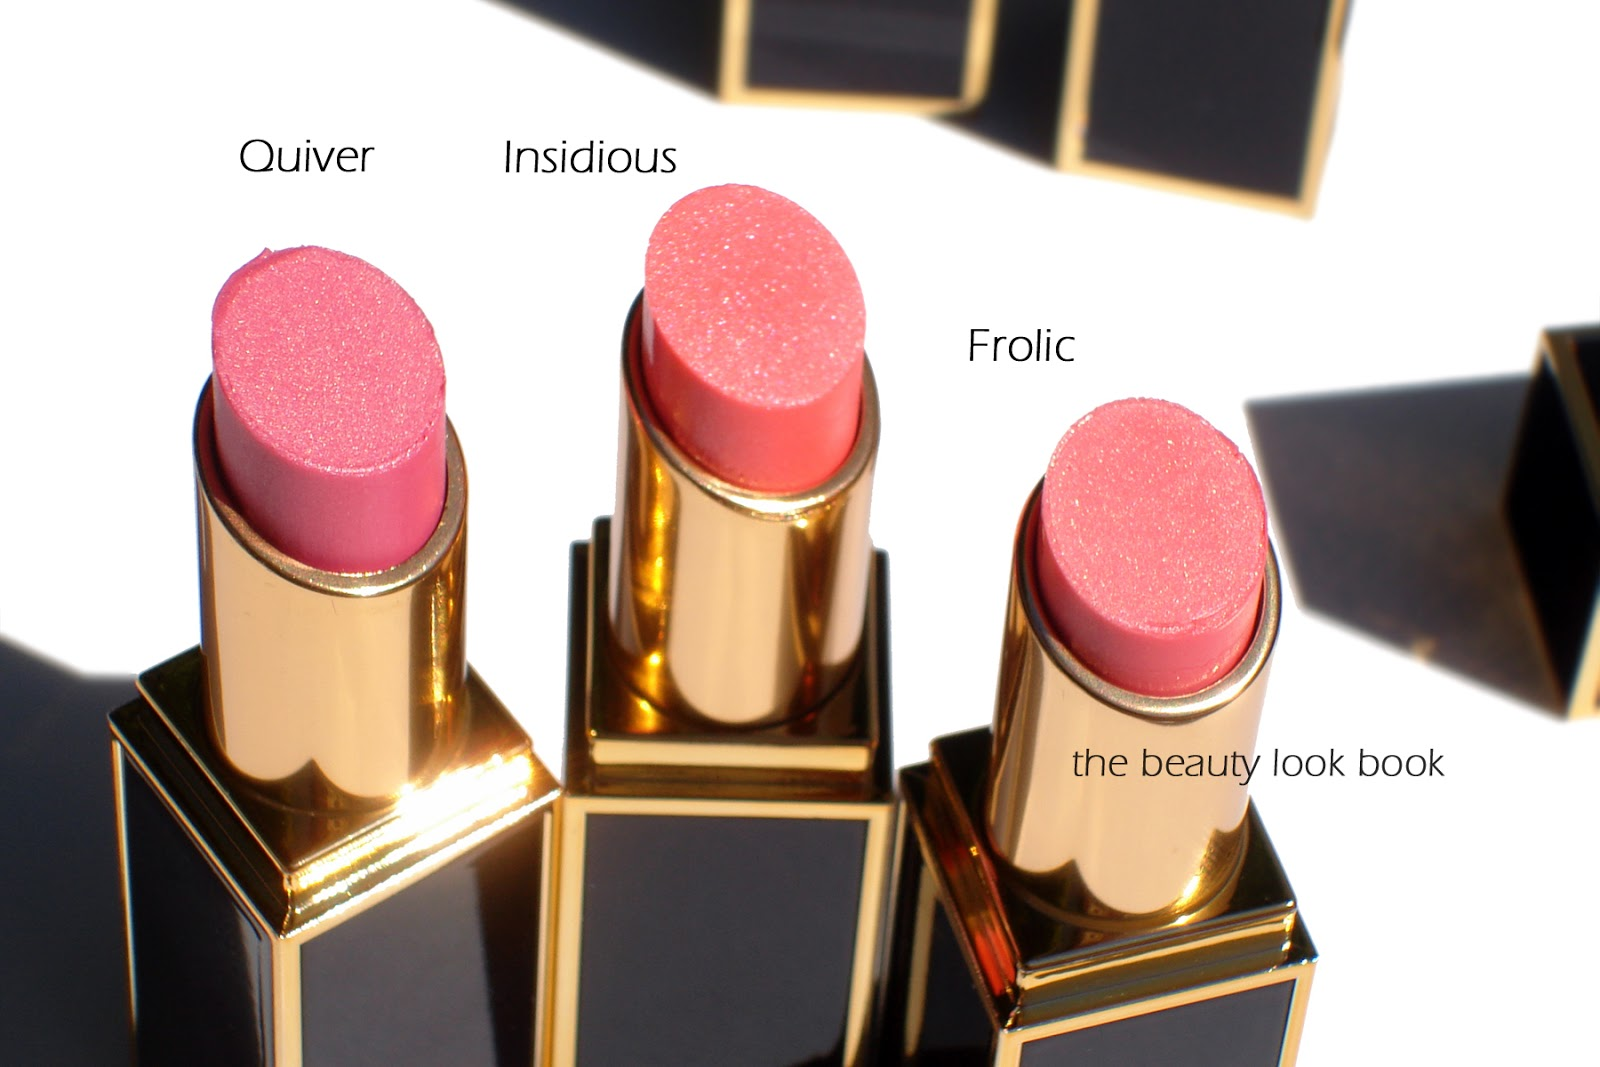 tom ford lip color shine quiver insidious and frolic the beauty look book. Black Bedroom Furniture Sets. Home Design Ideas